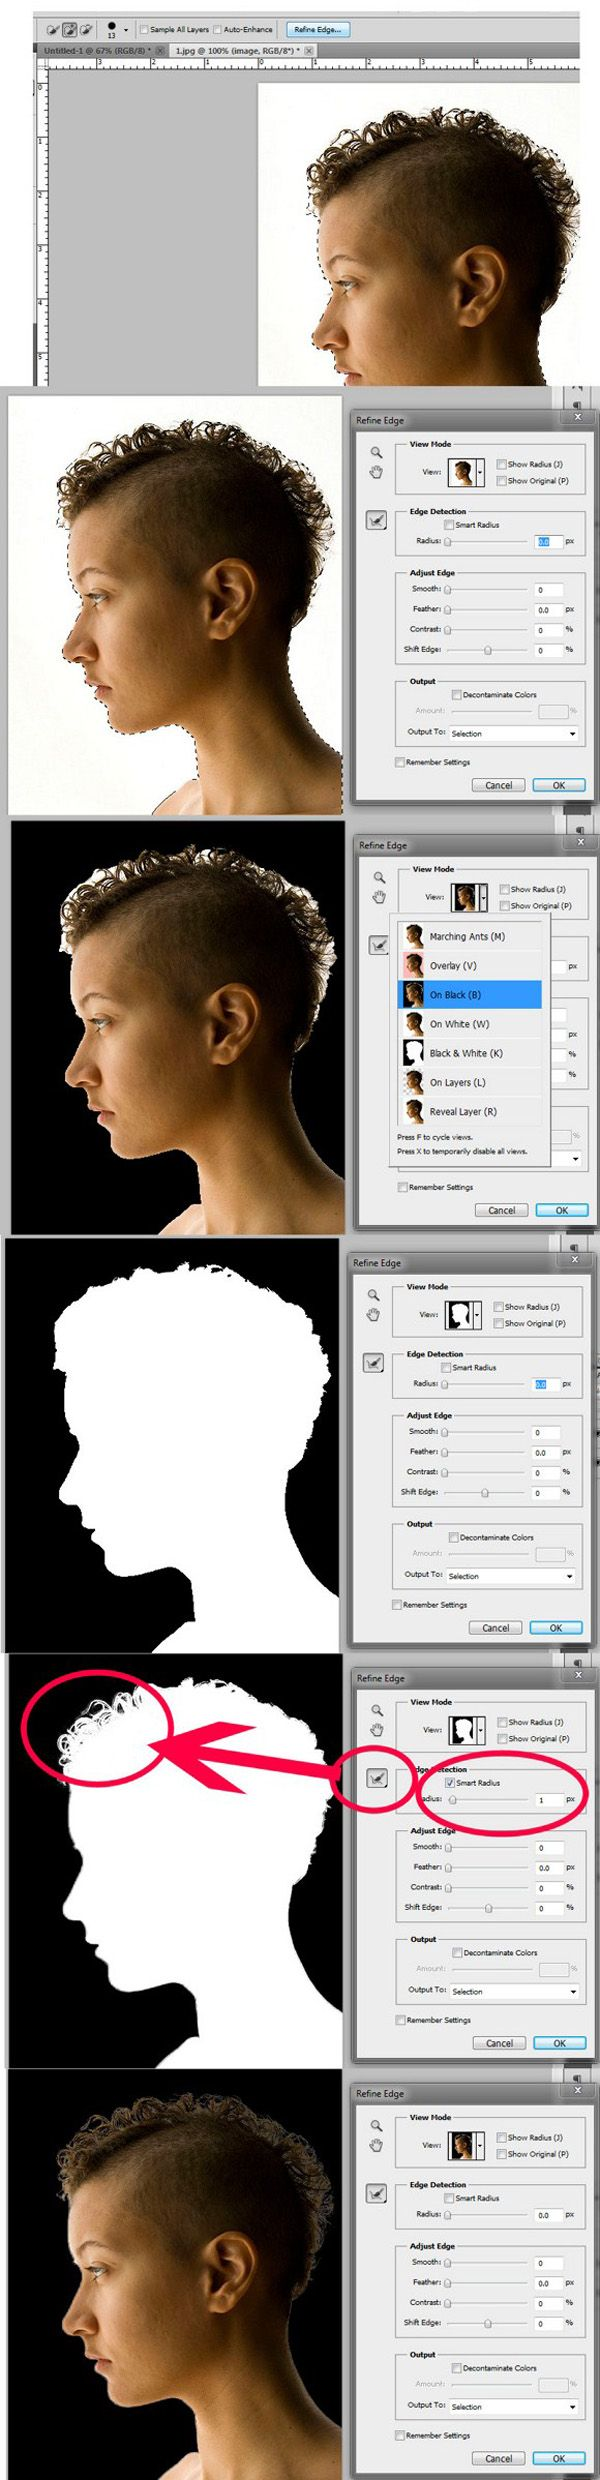 One of the most difficult and frustrating tasks in Photoshop is making a clean and decent selection on photos that involve super fine hair, fur, leaves, and any fiber like elements.  When using the standard selection tool or the masking process, you may able to accurately select smooth edges. We